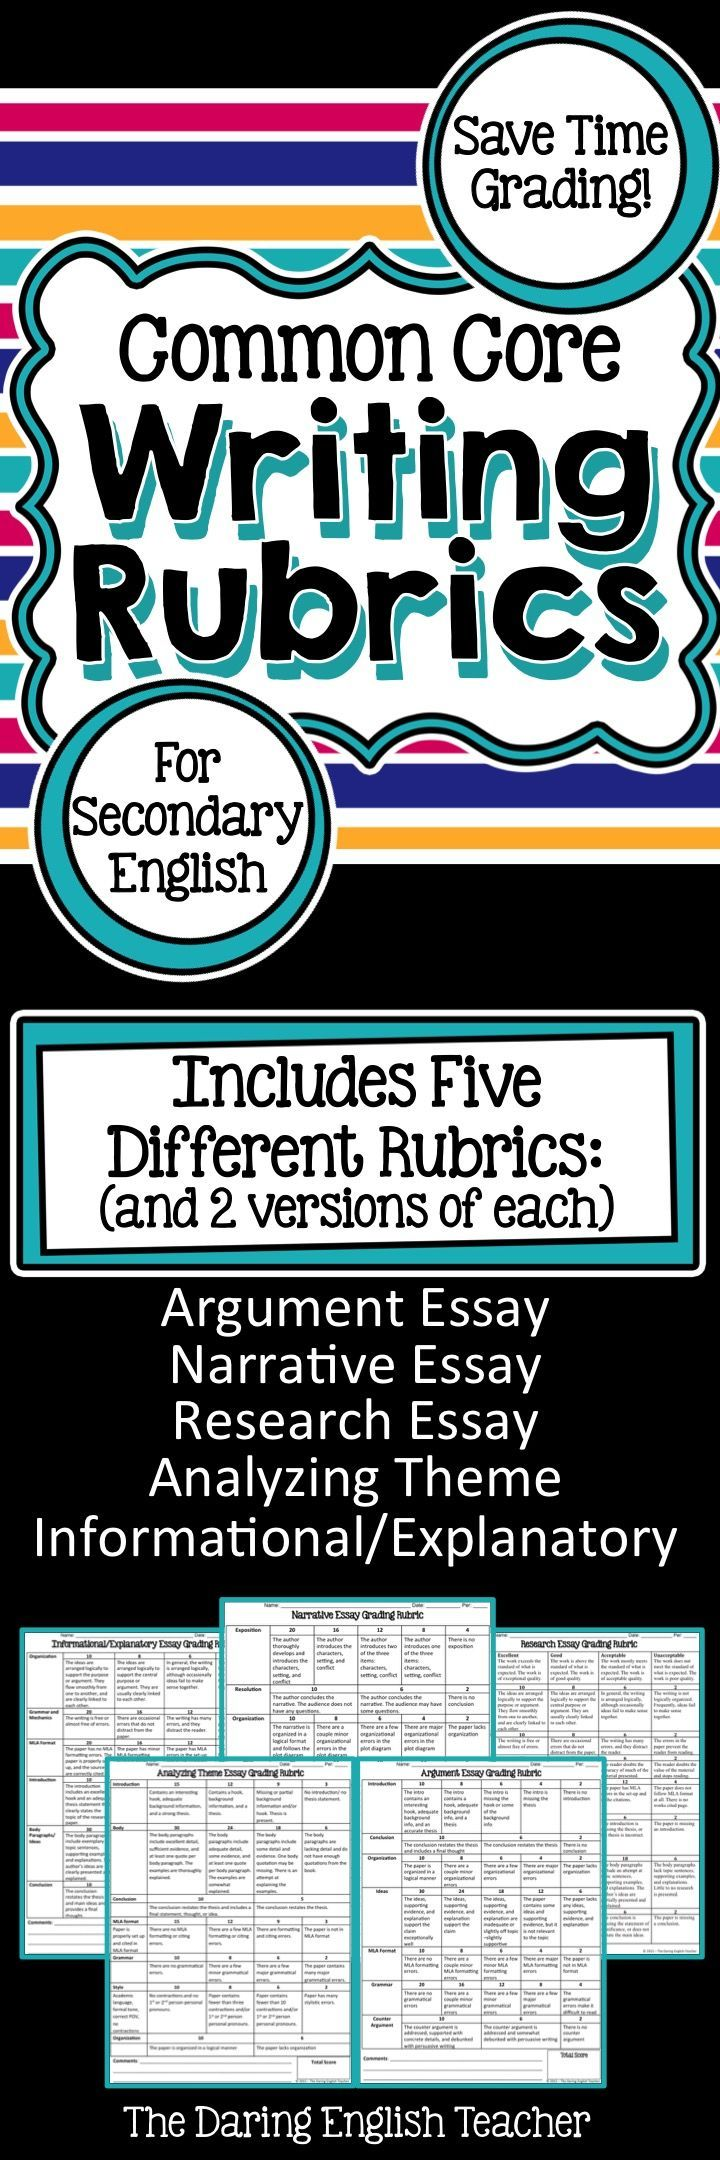 essays for teachers short essay on my school in hindi best ideas  best ideas about secondary teacher high school these ccss aligned writing rubrics will help you save